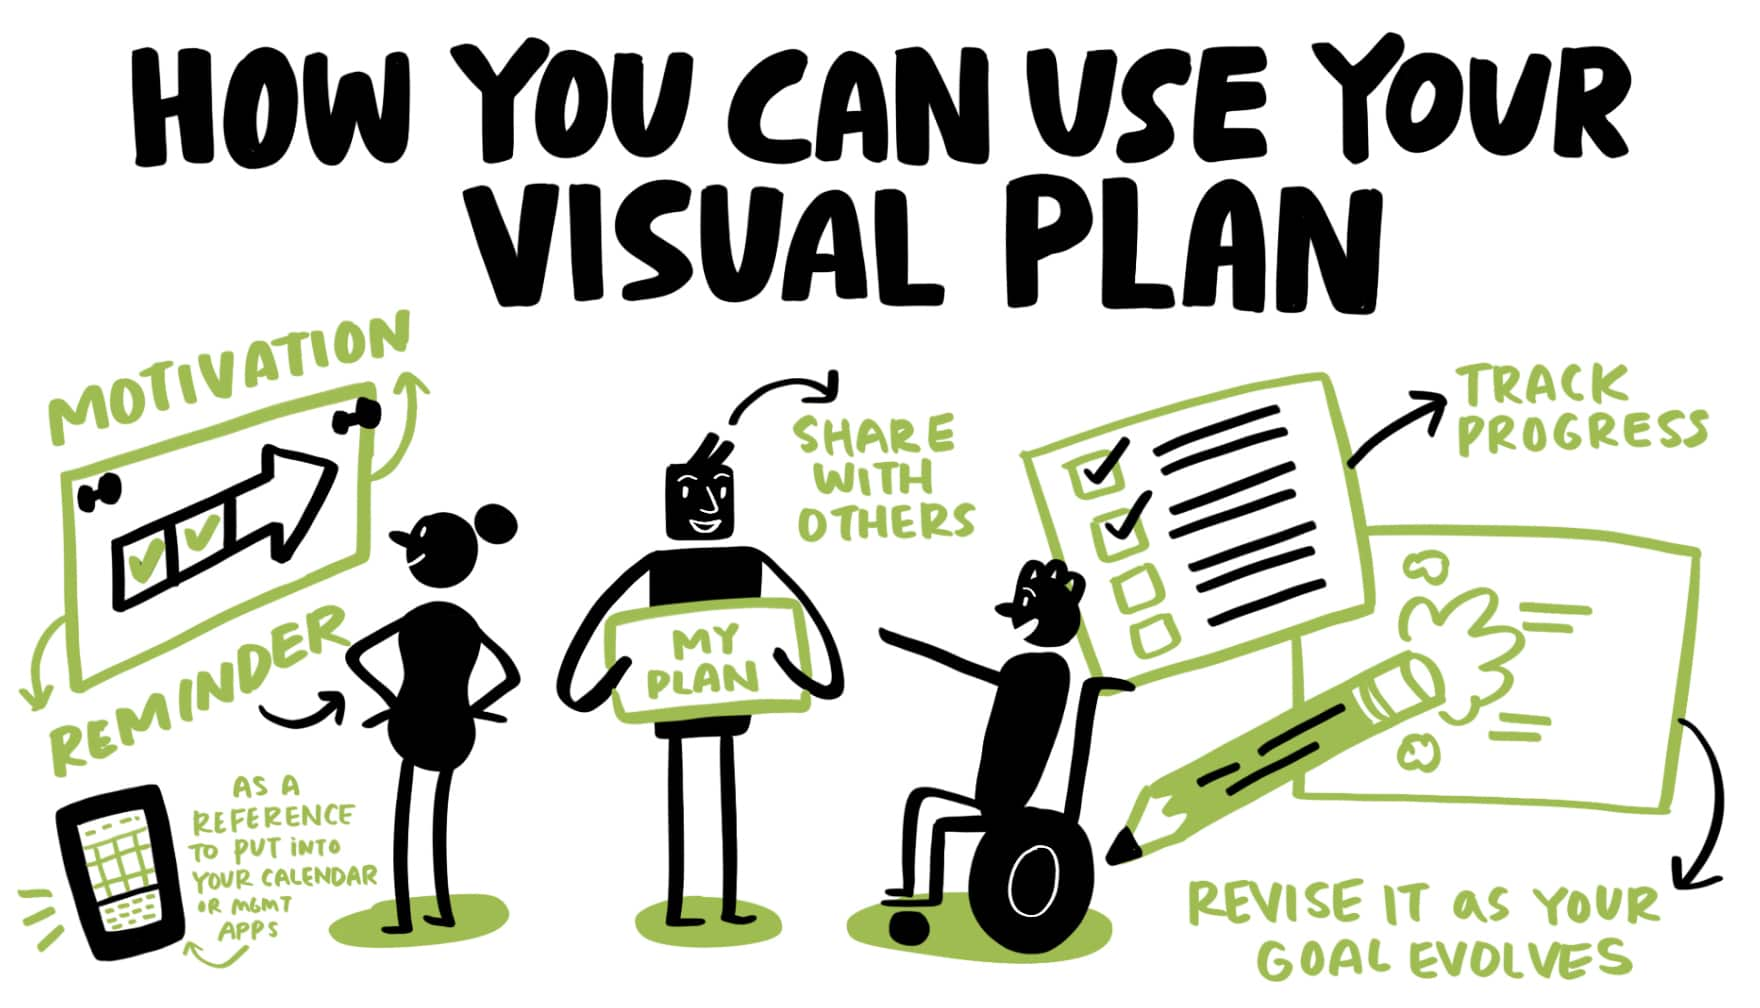 How you can use your visual plan